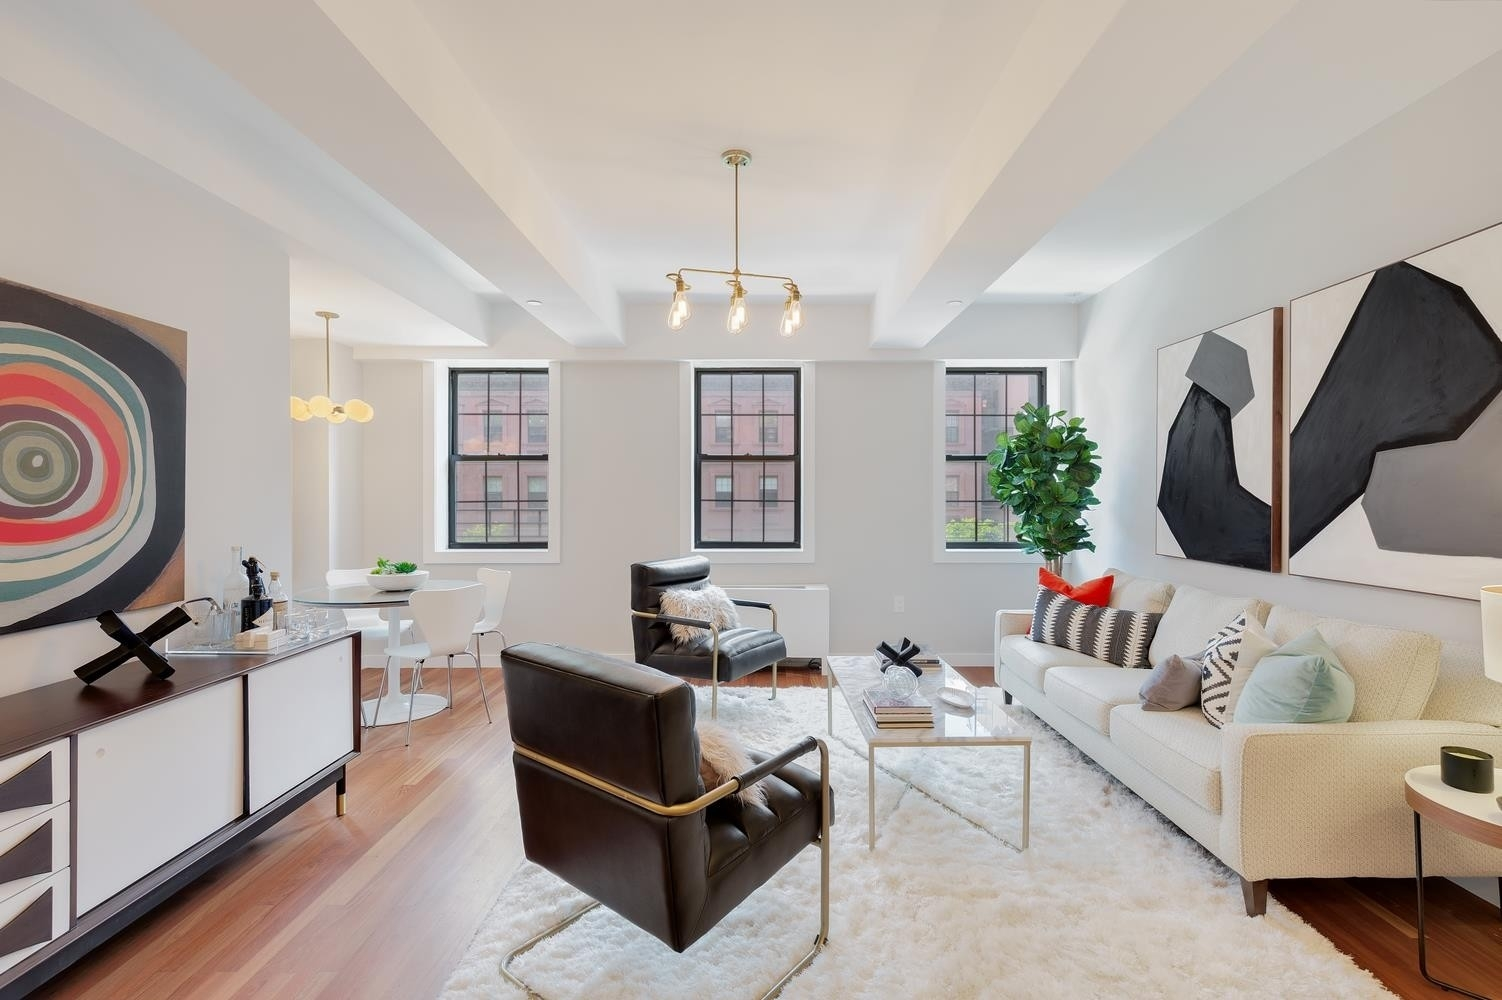 Condominium at BROWNSTONE LANE, 312 West 119th St, 3N New York